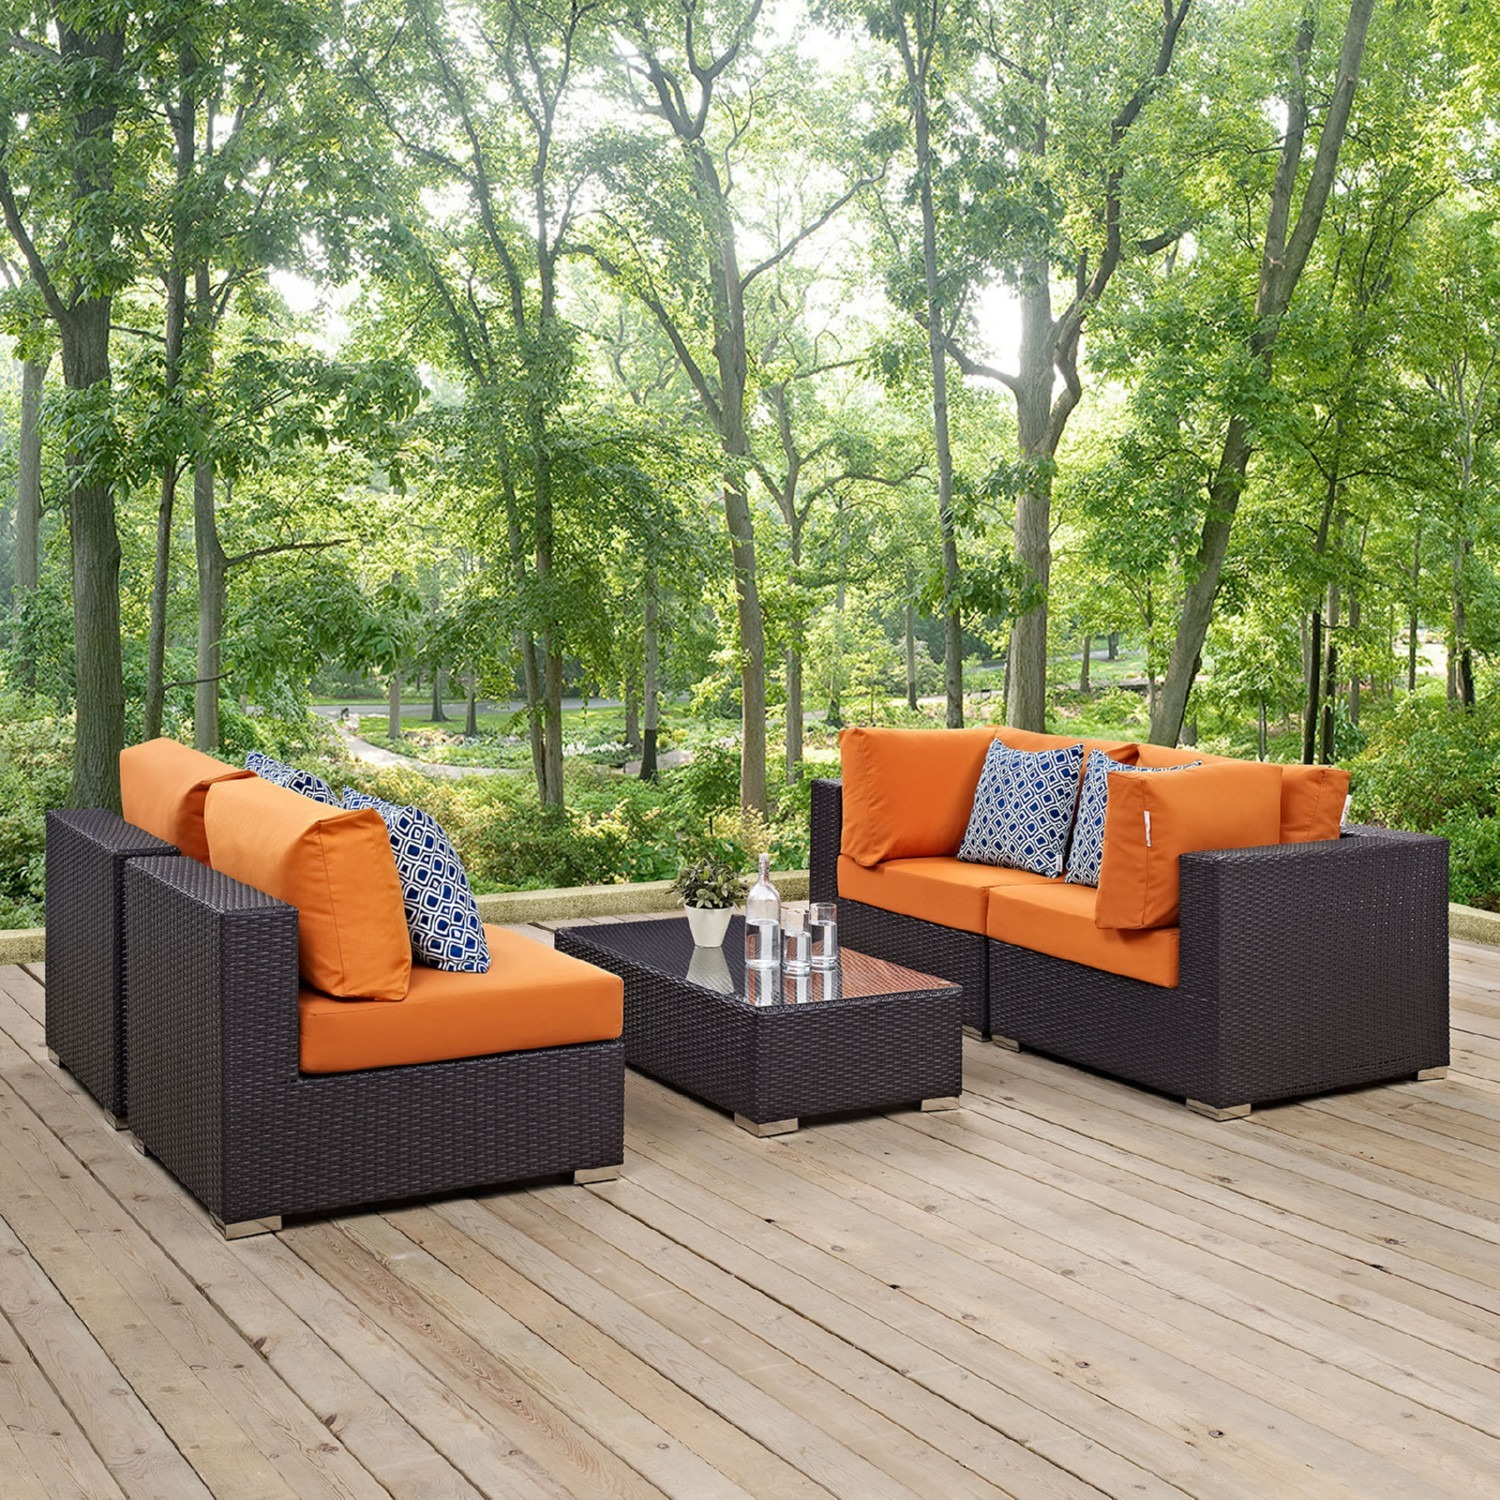 5-Piece Outdoor Sectional In Orange Fabric Cushion - image-0